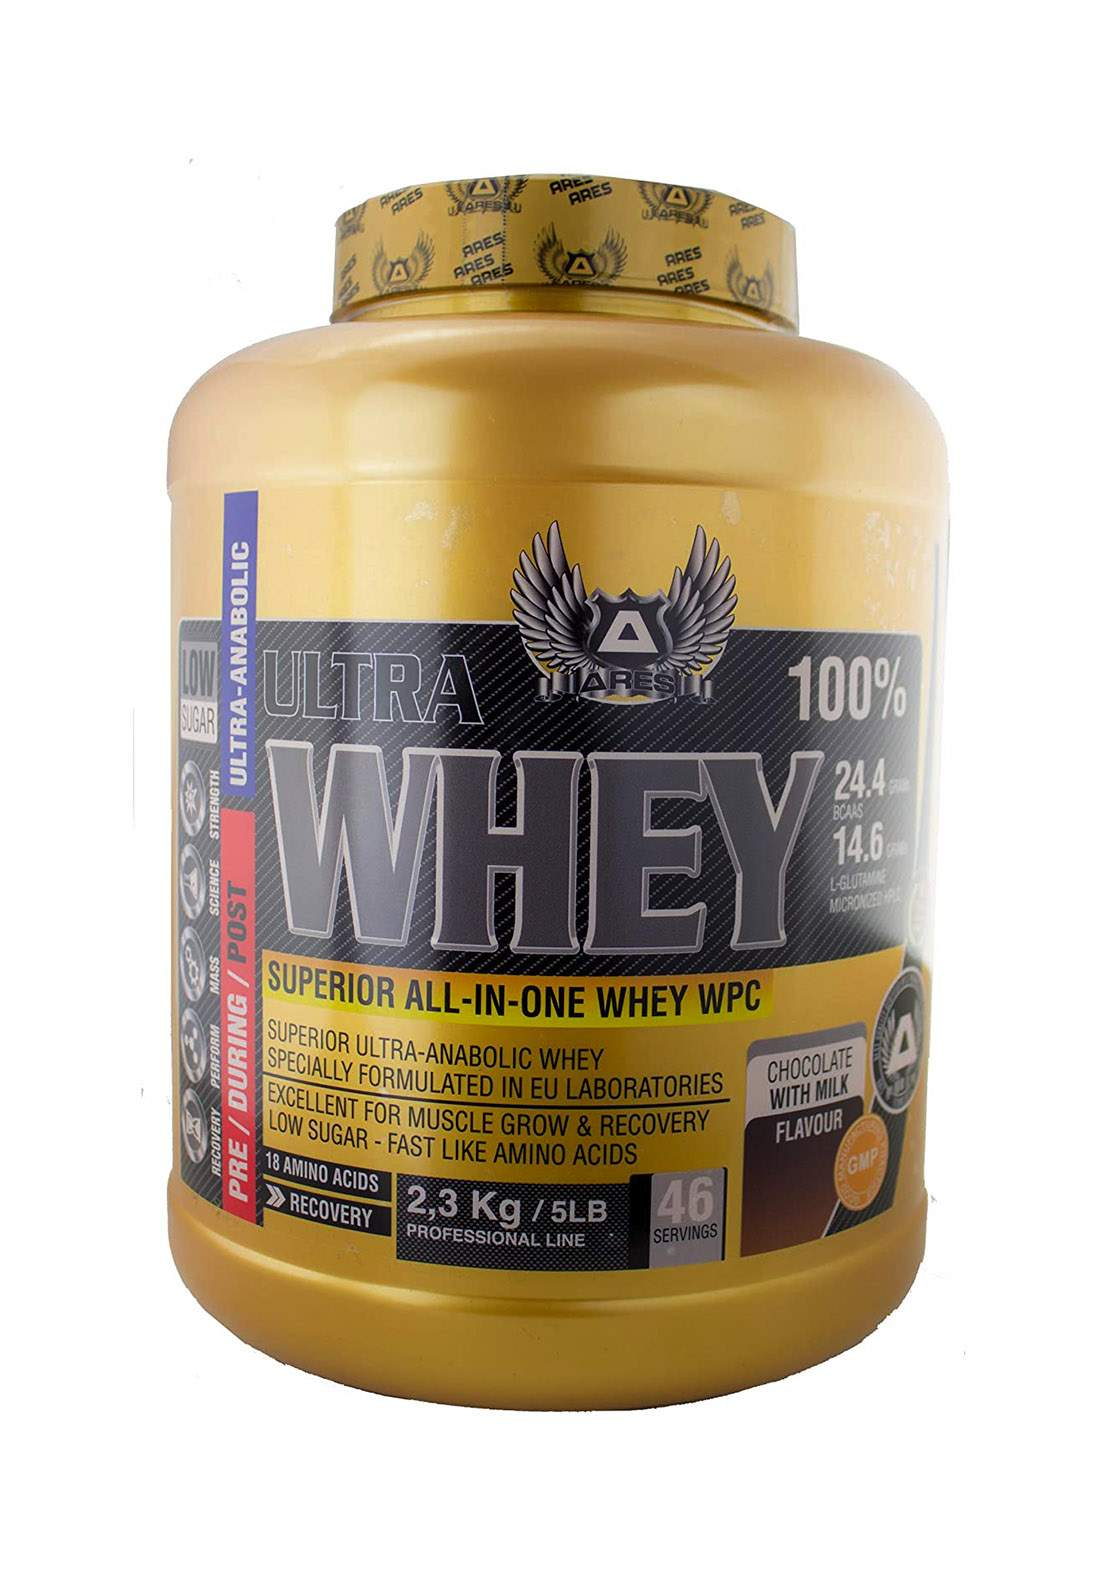 Ares Proteina Whey Ultra - 2.3 Kg  مكمل غذائي